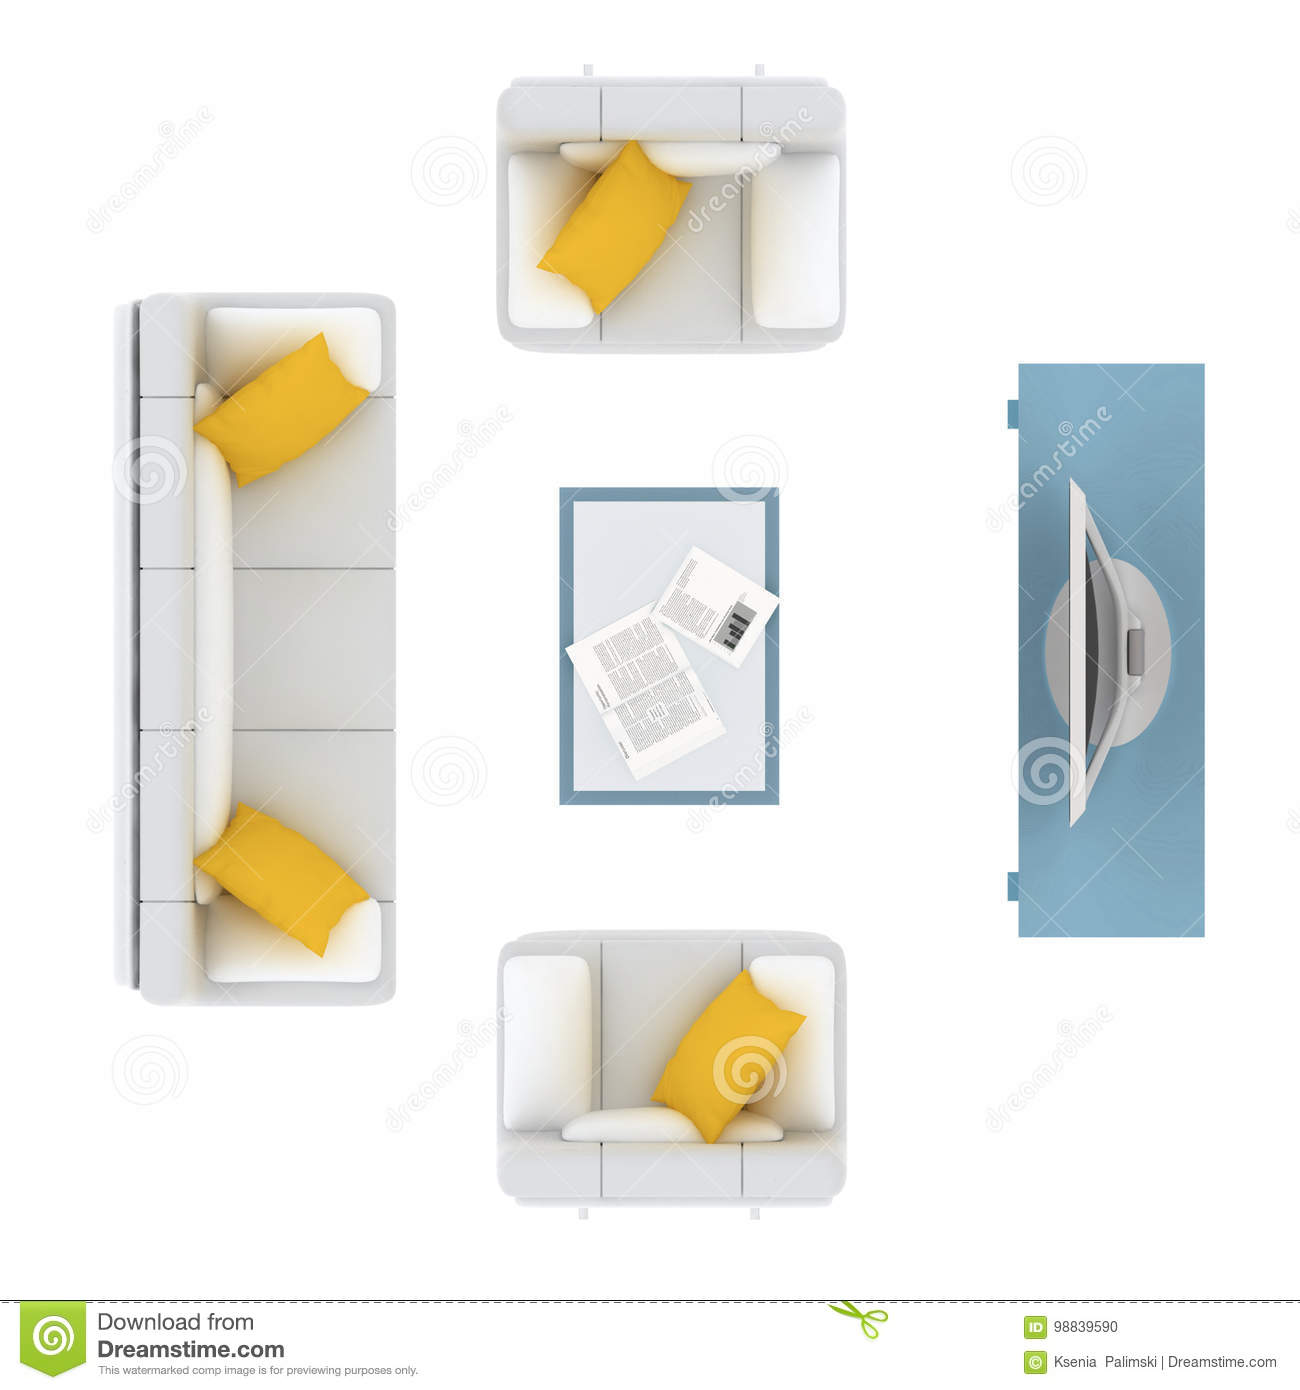 White Sofa With Yellow Cushion And Tv Set Plan Design Elements Stock Illustration - Illustration Of Coffee, Yellow: 98839590